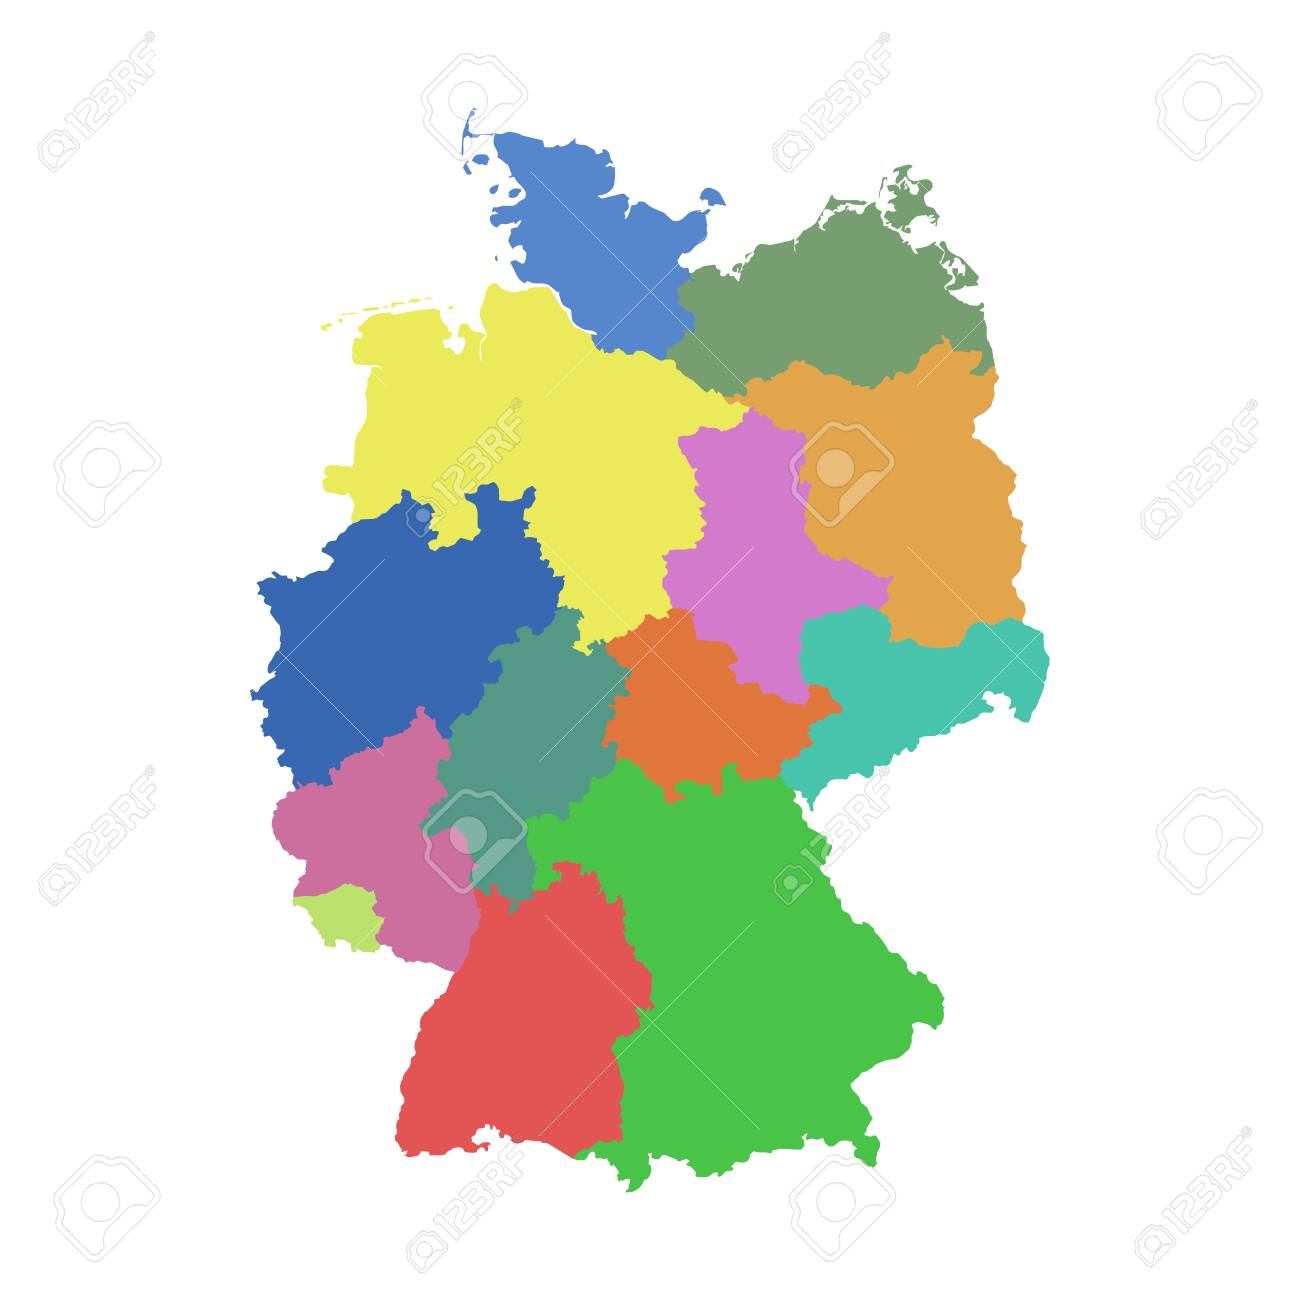 Germany Map States.Germany Map With Federal States Royalty Free Cliparts Vectors And